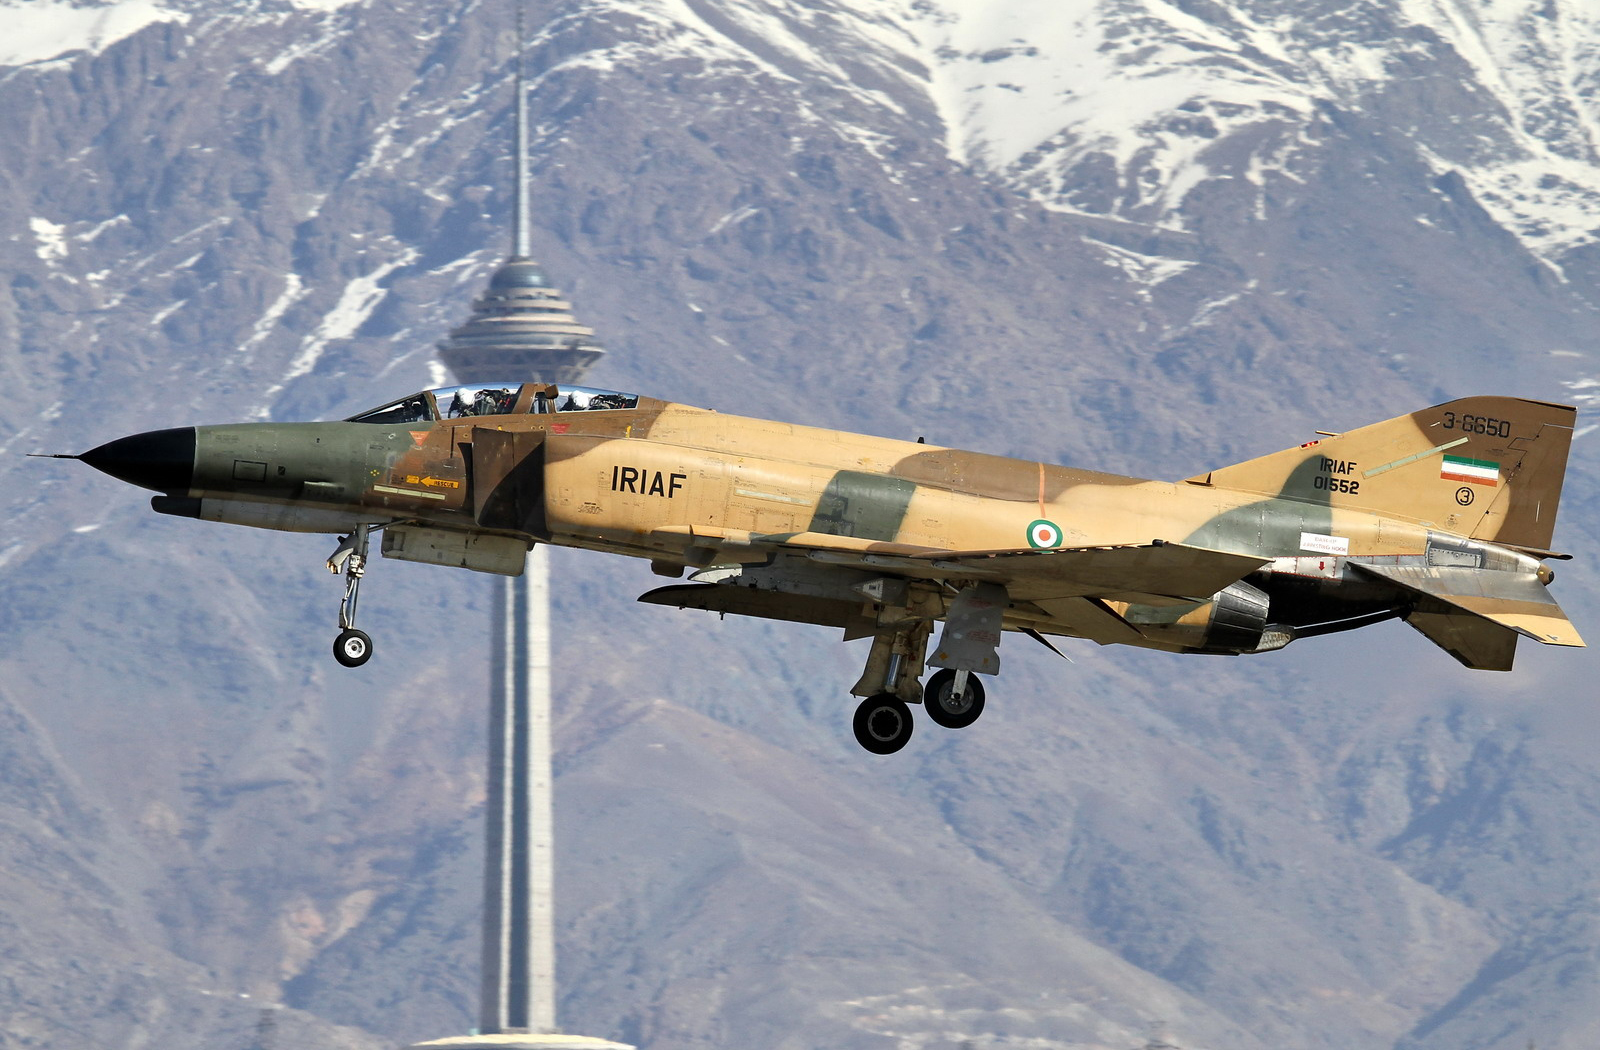 Military Camouflage Wallpaper Hd The Aviationist 187 Photo Iranian F 4 Phantom As One Of